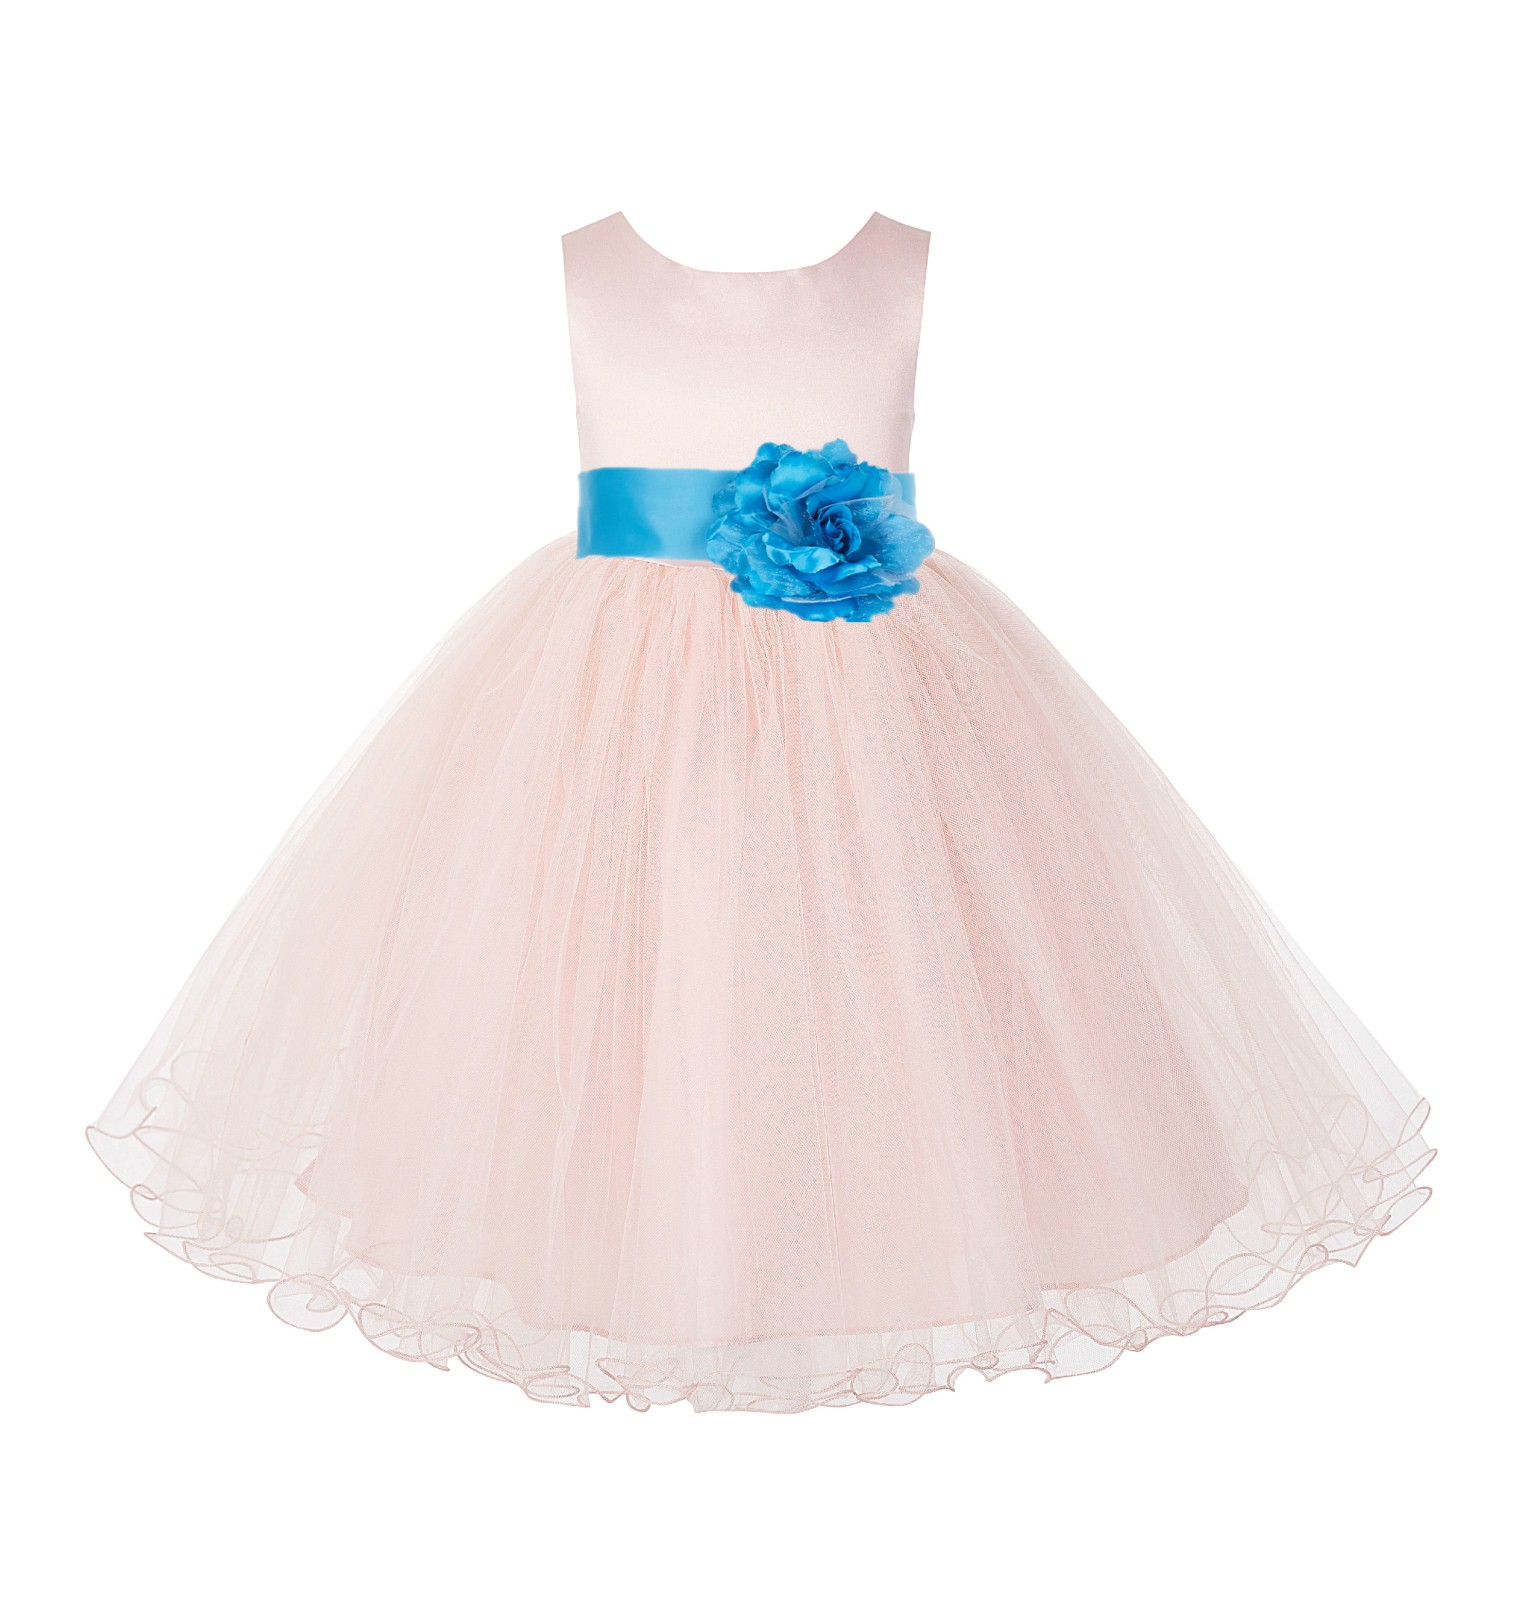 Blush Pink / Turquoise Tulle Rattail Edge Flower Girl Dress Pageant Recital 829S